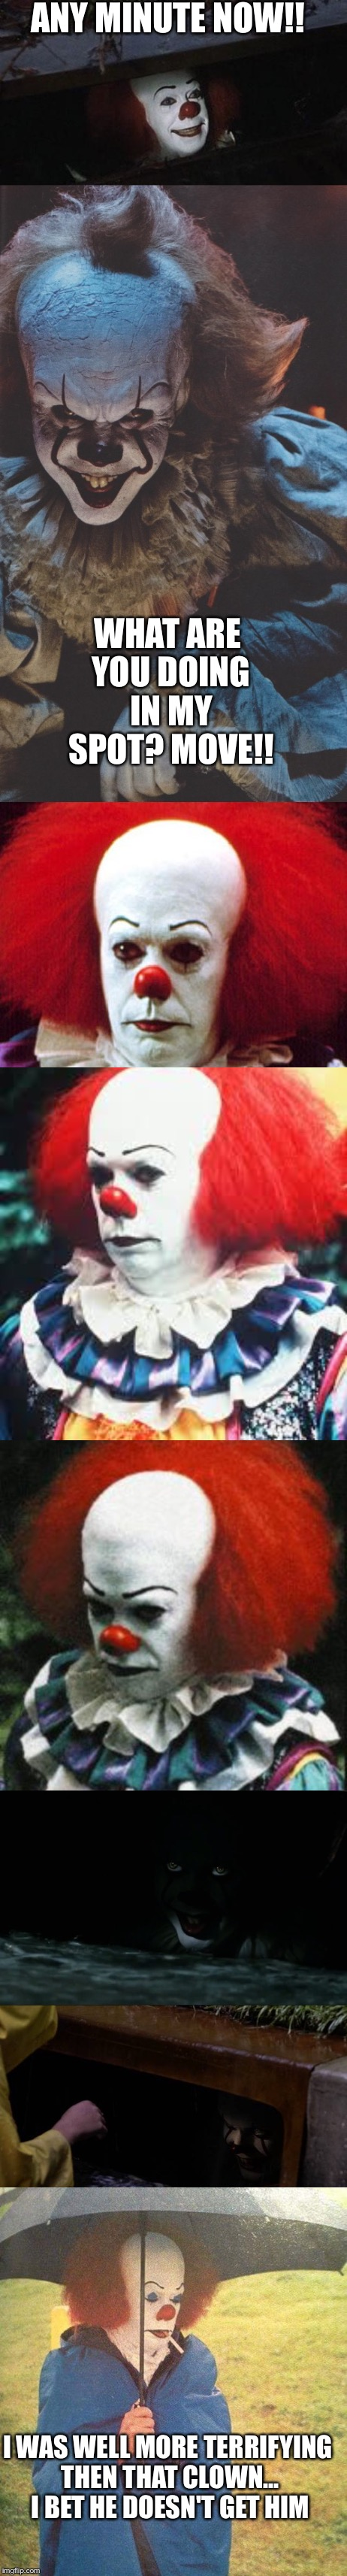 ANY MINUTE NOW!! WHAT ARE YOU DOING IN MY SPOT? MOVE!! I WAS WELL MORE TERRIFYING THEN THAT CLOWN... I BET HE DOESN'T GET HIM | image tagged in memes,it clown | made w/ Imgflip meme maker